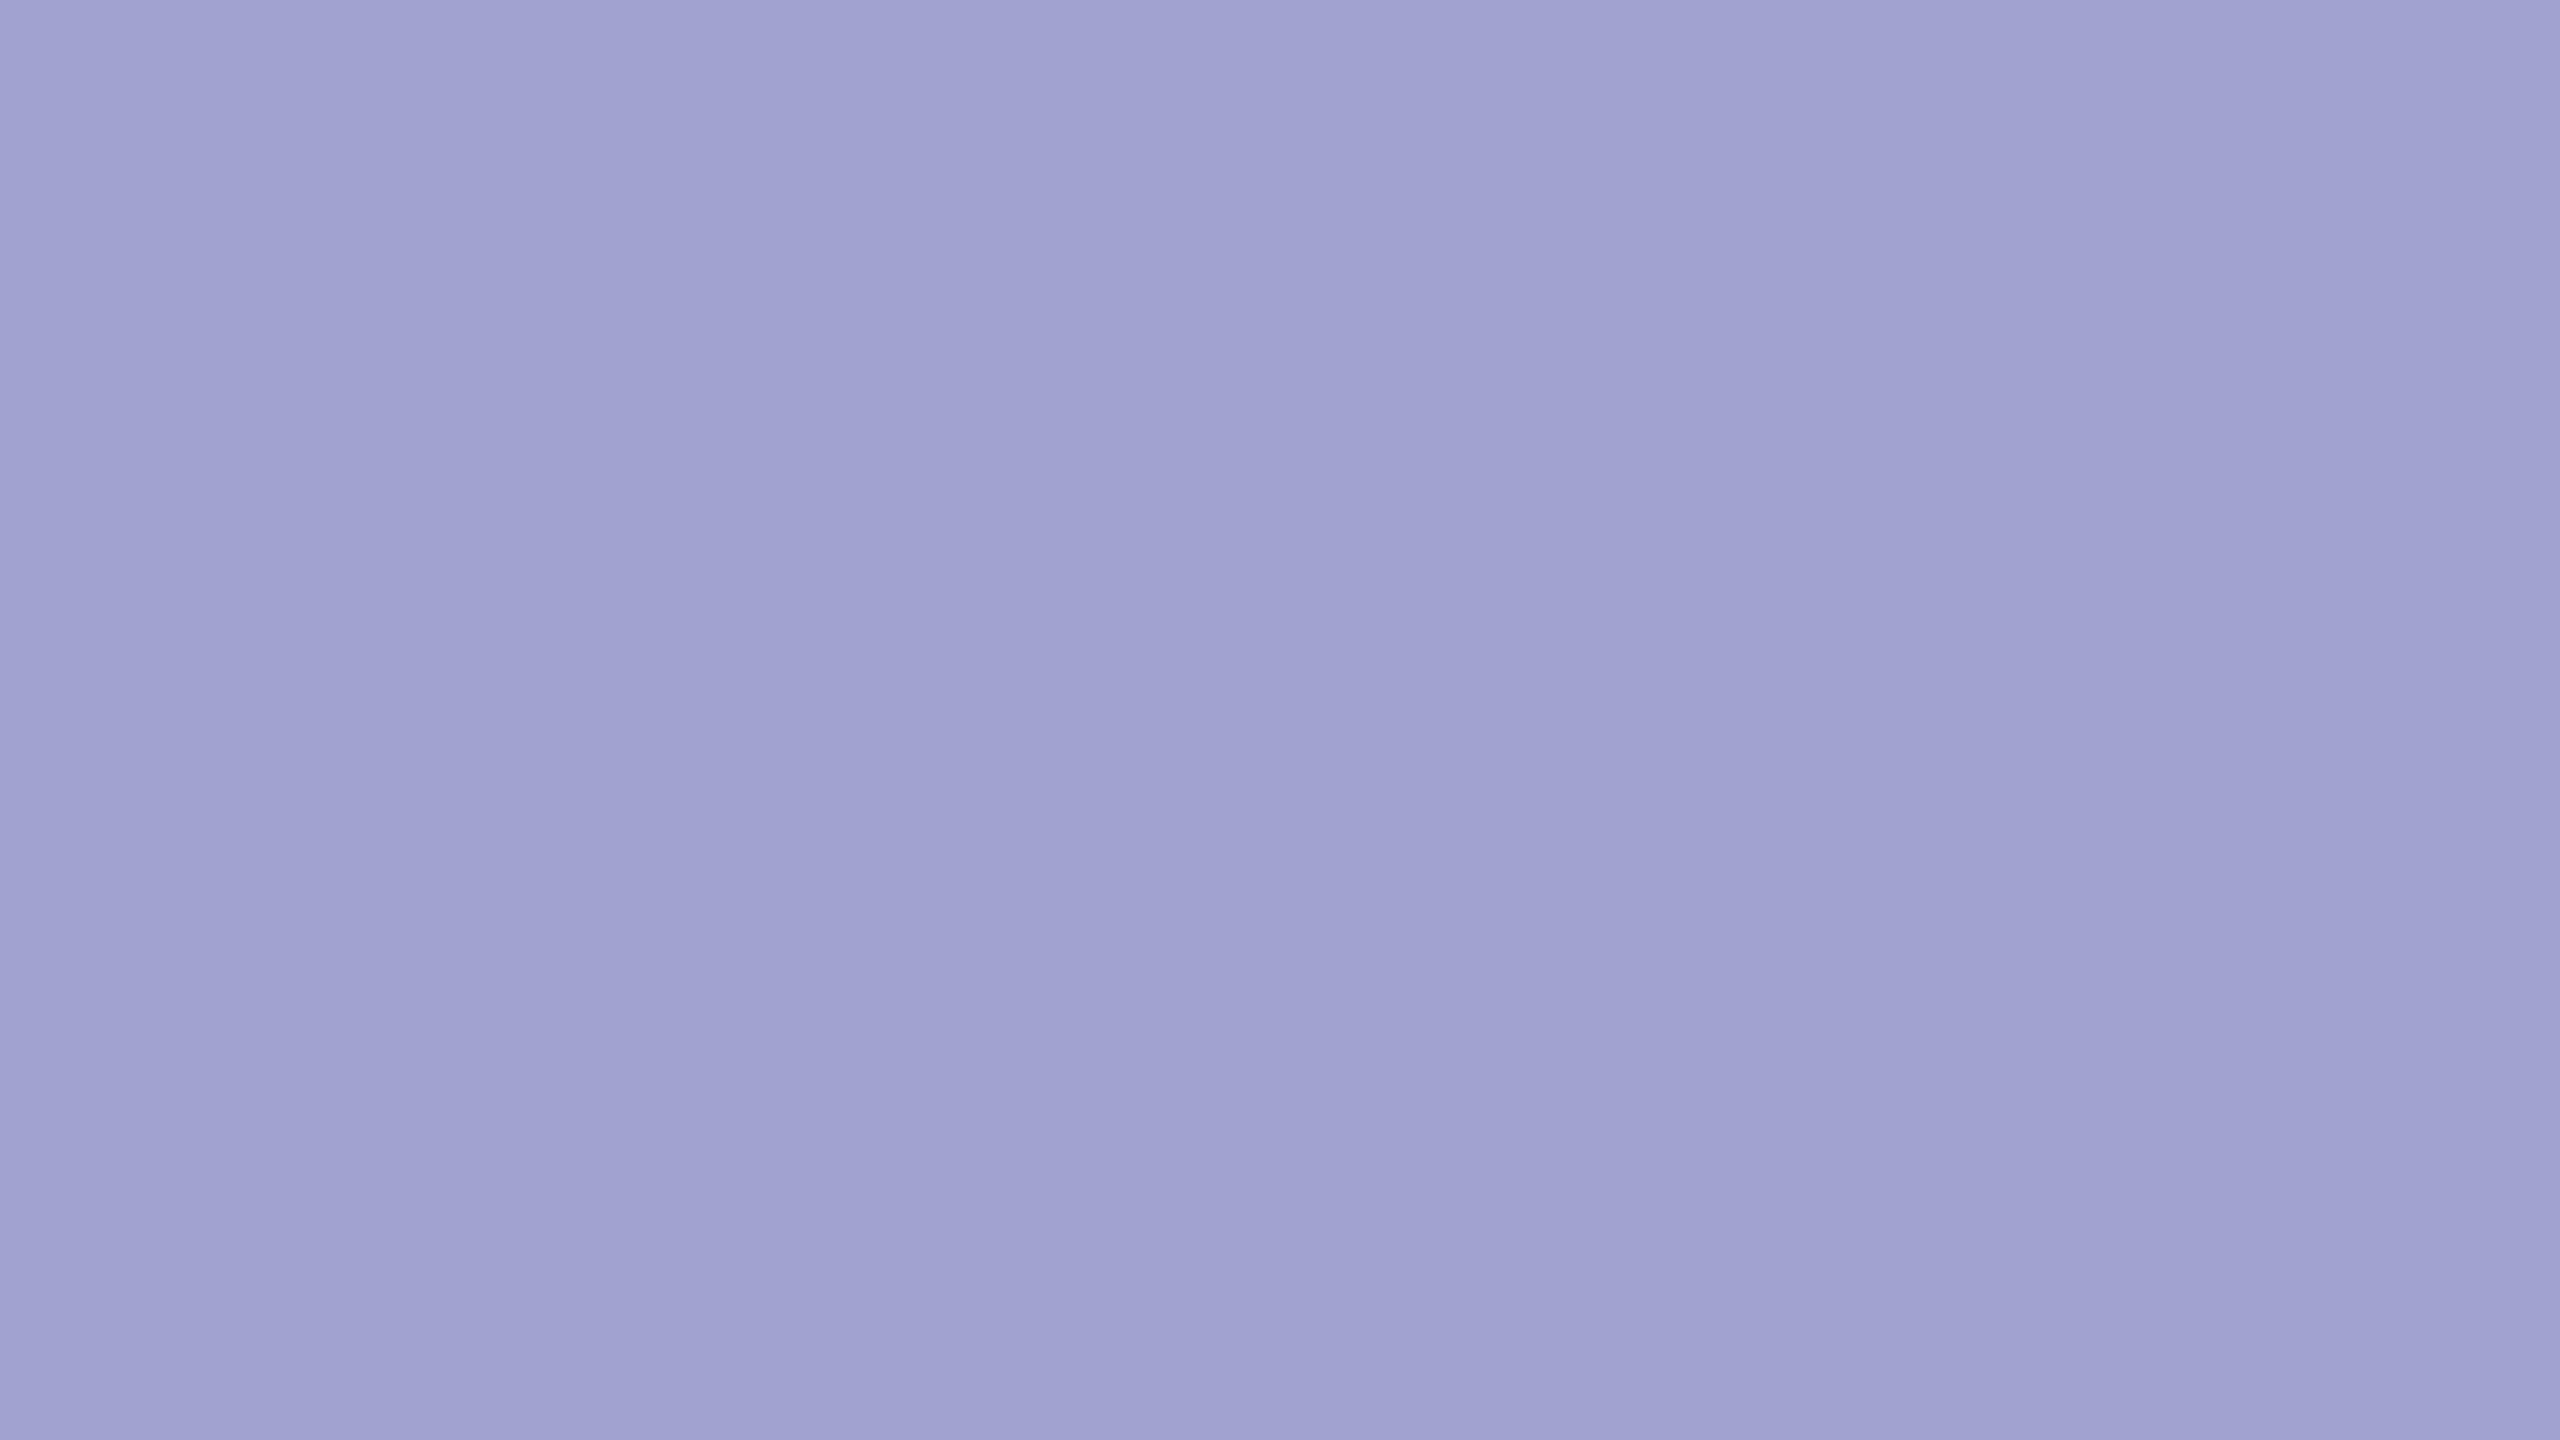 2560x1440 Blue Bell Solid Color Background